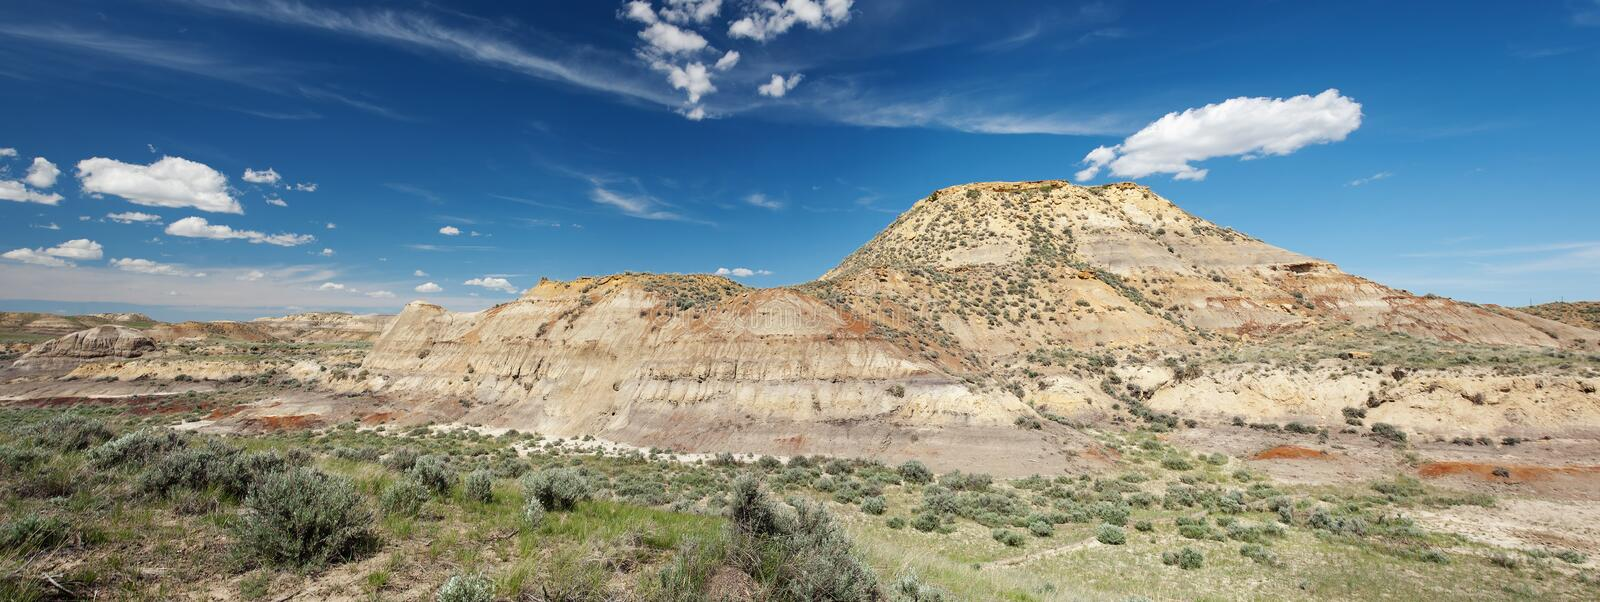 Download Badlands in Montana stock photo. Image of nature, hill - 18927804